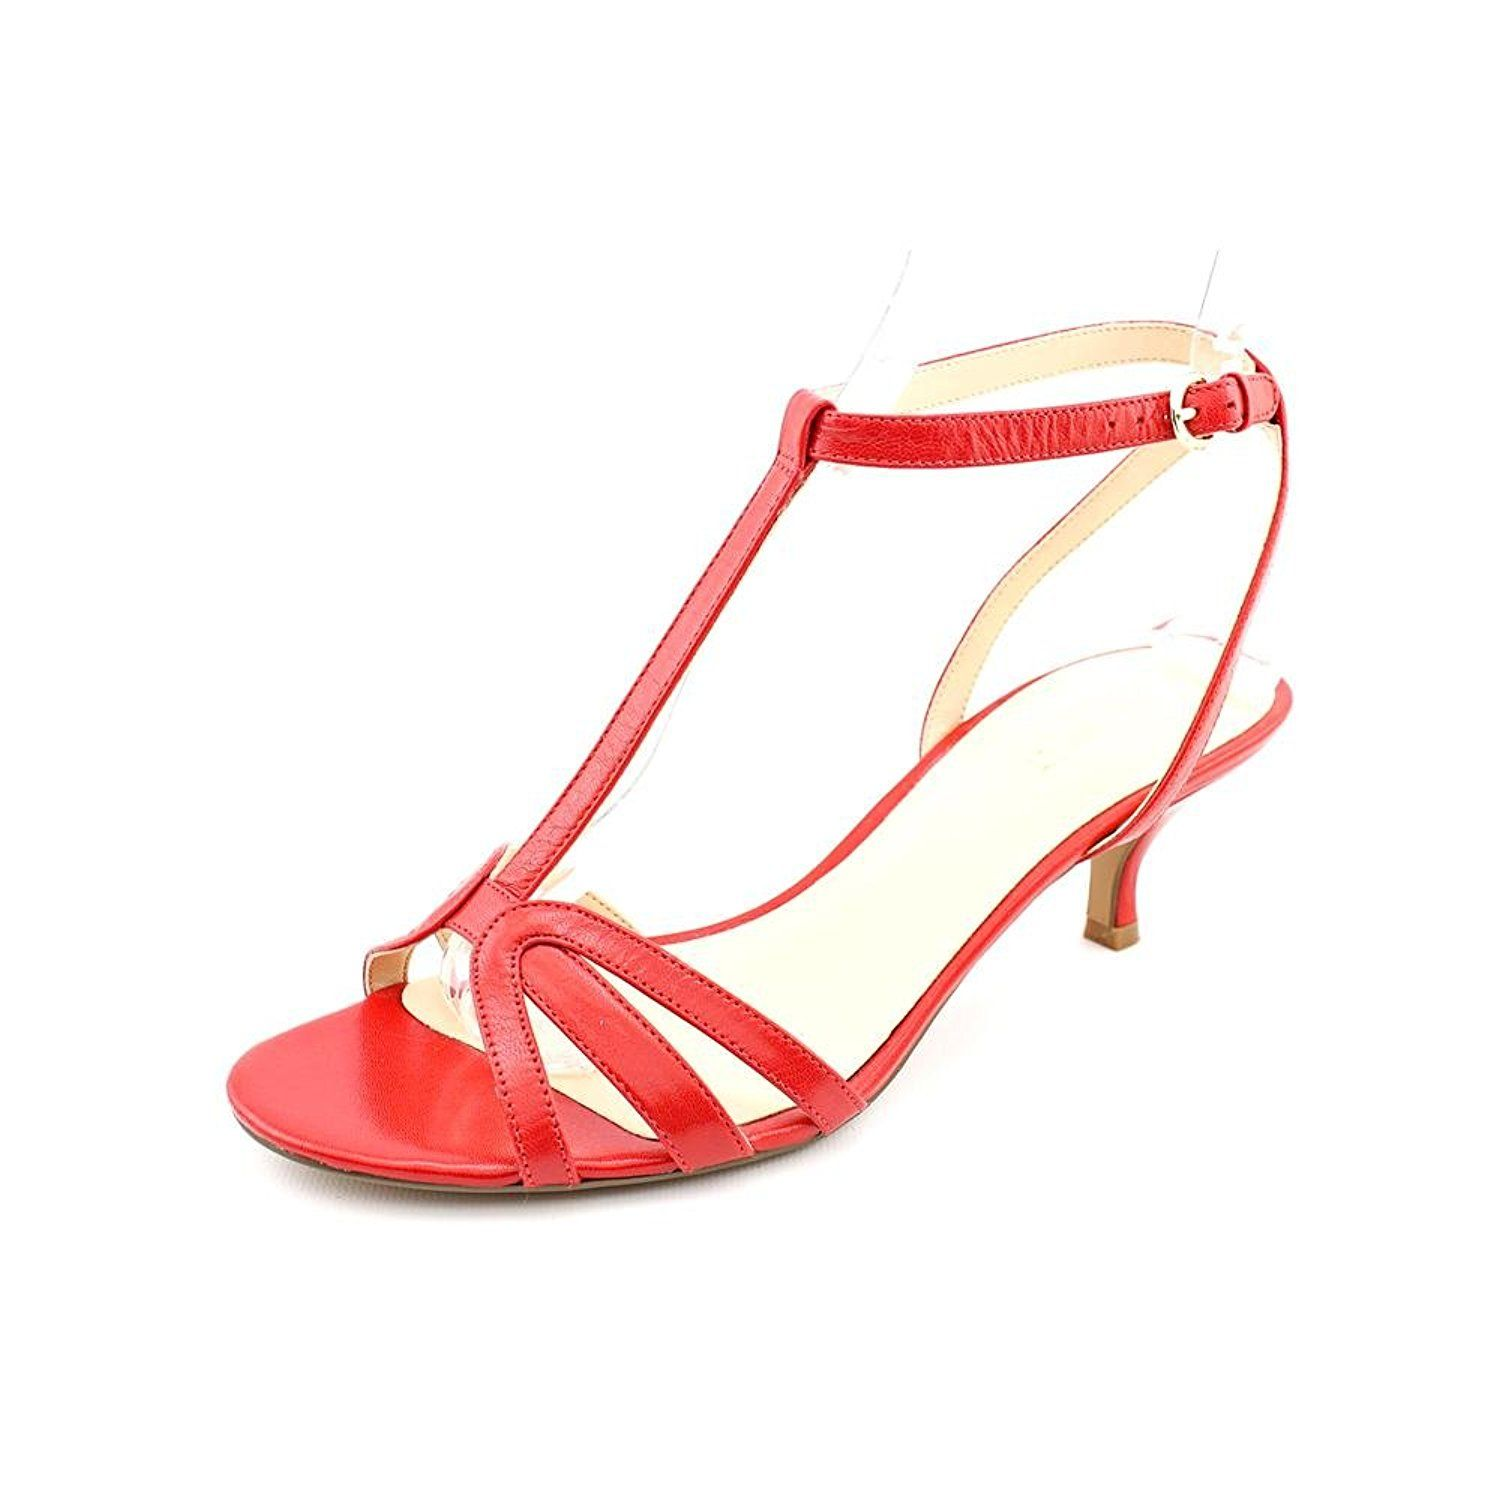 04220cc66ea Nine West Odarlin Red Leather Strappy Kitten Heel Sandal Woman Size 11M      New and awesome outdoor gear awaits you